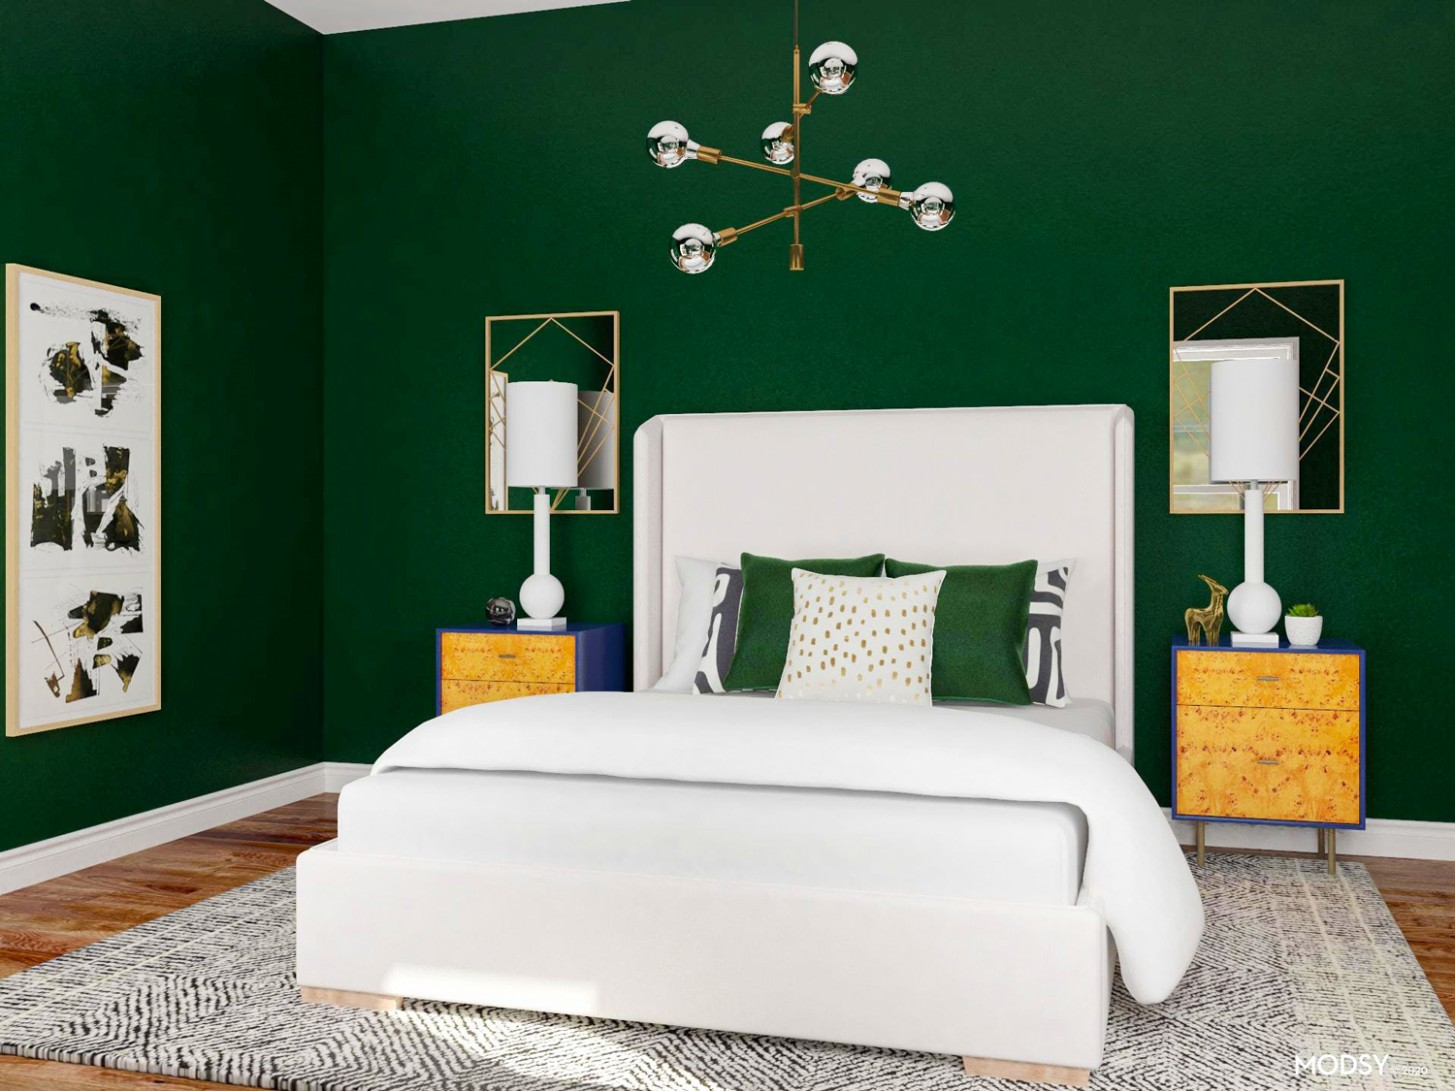 10 Green Bedroom Ideas for the Perfect Relaxing Retreat  Modsy Blog - Bedroom Ideas Dark Green